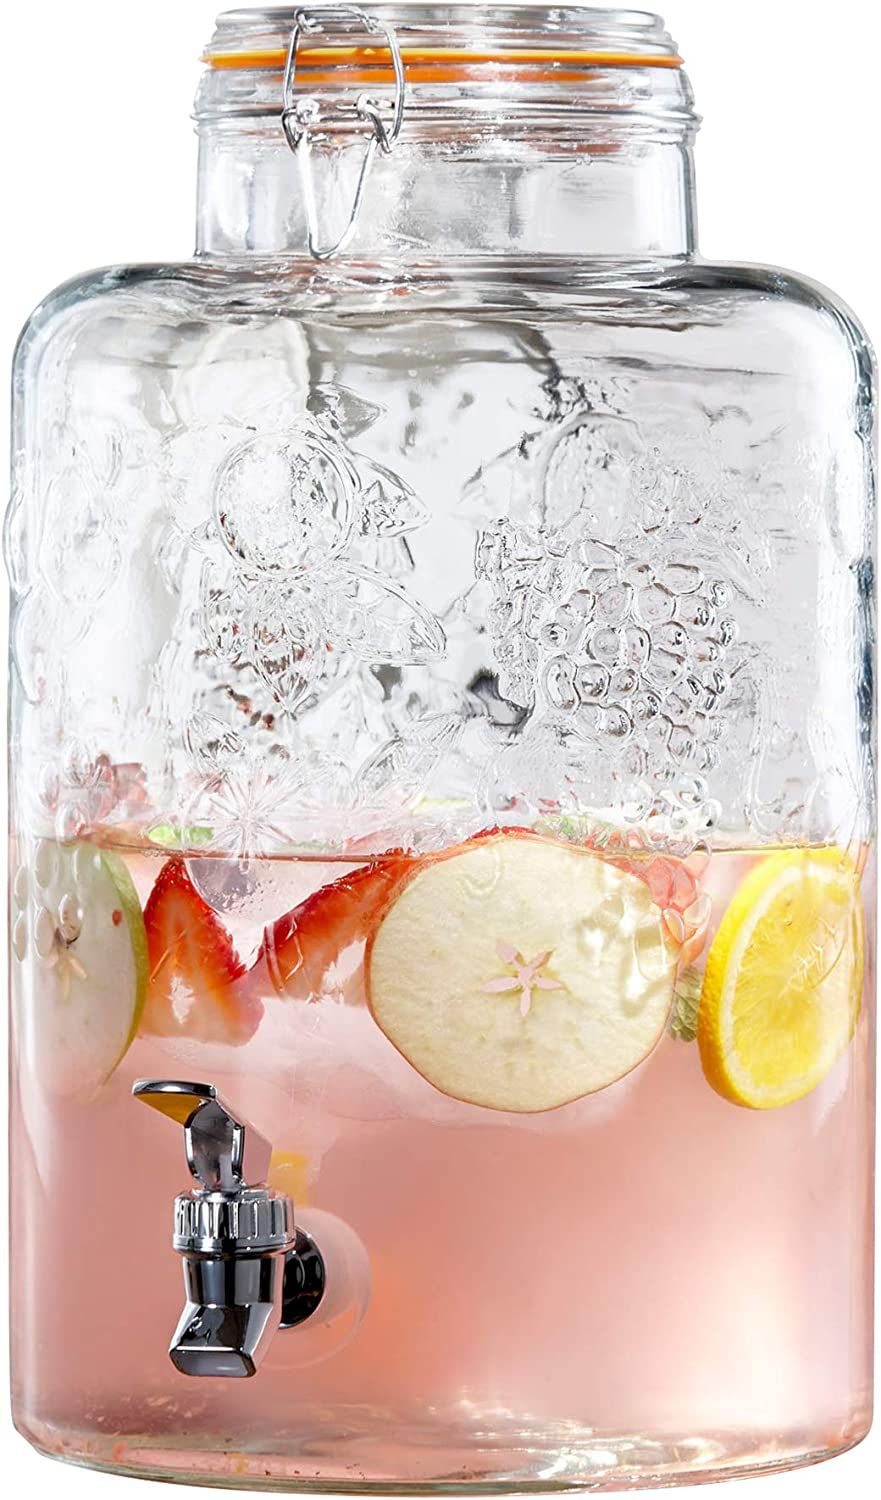 Style Setter 210261-GB Beverage Cold Drink Dispenser w 2.5-Gallon Capacity Glass Jug, Leak-Proof Acrylic Spigot in Gorgeous Gift Box for Parties, 2.5 Gallon, Vineyard Clamp Lid